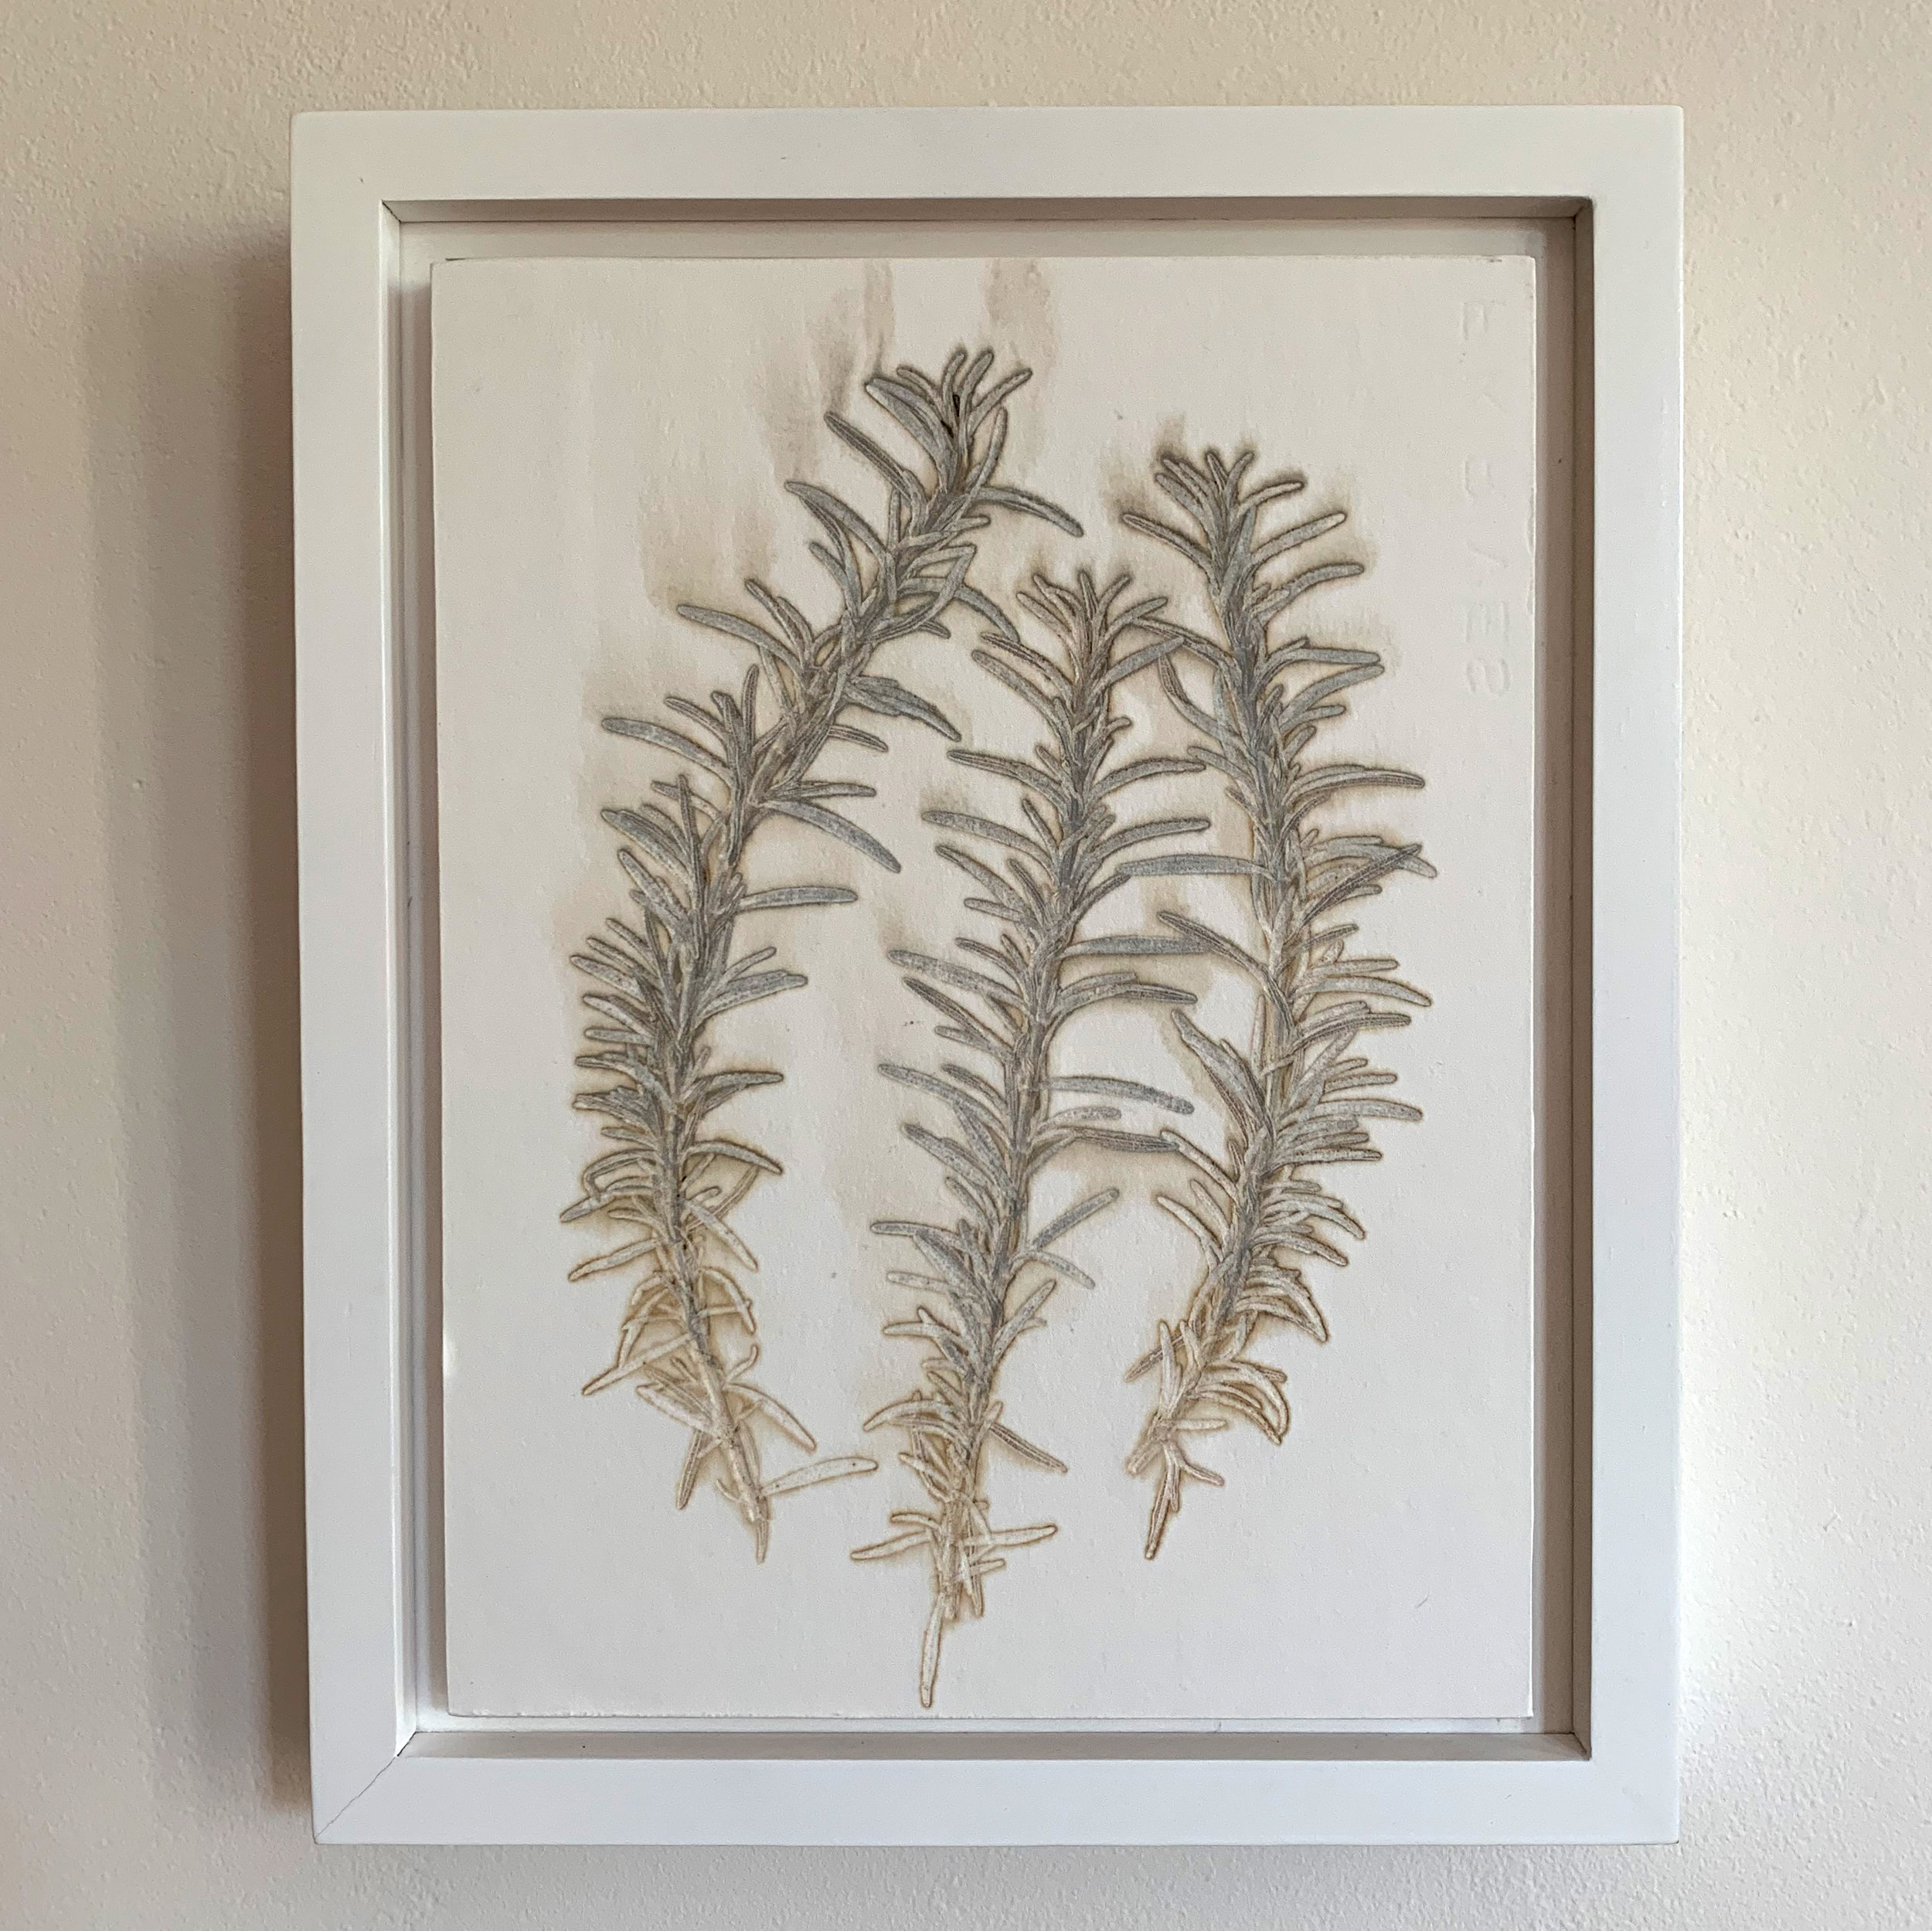 Fresh rosemary was used along with silver inks to create this natural imprint on paper. The print is 9x12 plus frame.